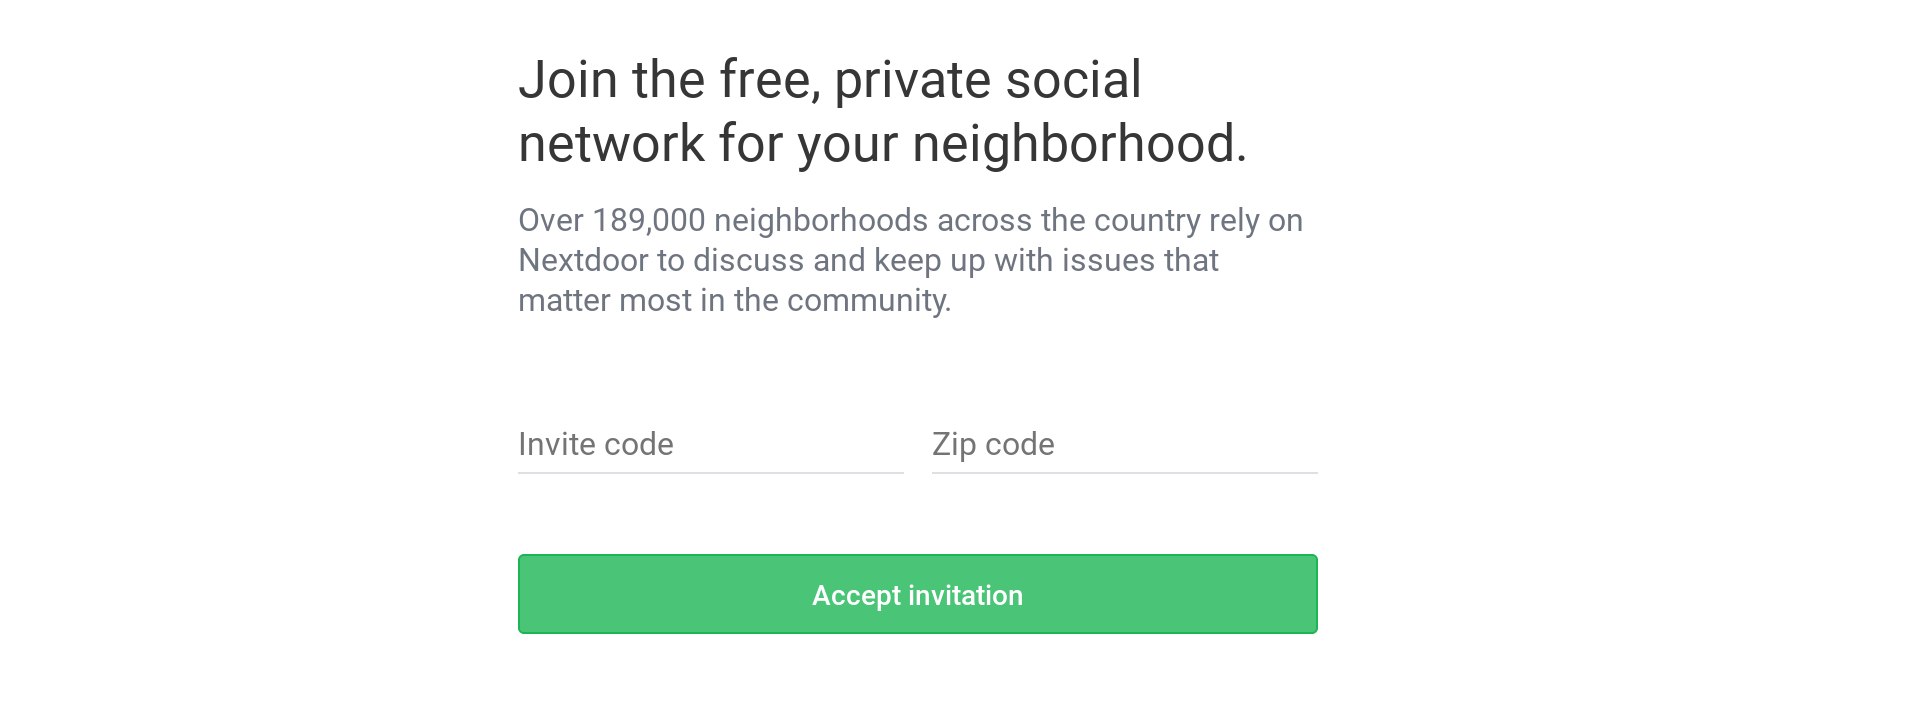 nextdoor.com/join invite code